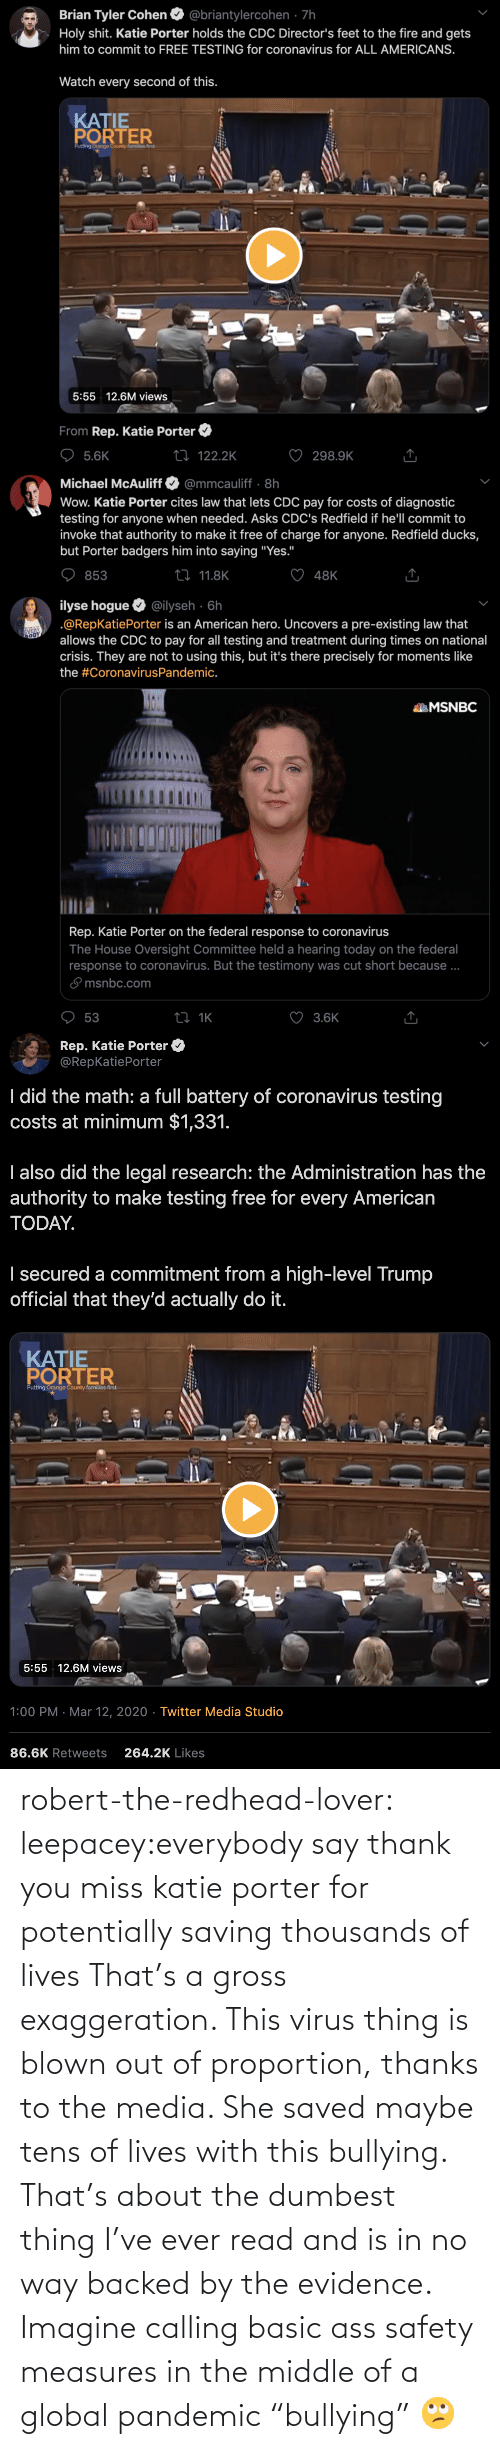 """Tumblr, Thank You, and Blog: robert-the-redhead-lover:  leepacey:everybody say thank you miss katie porter for potentially saving thousands of lives   That's a gross exaggeration. This virus thing is blown out of proportion, thanks to the media. She saved maybe tens of lives with this bullying.   That's about the dumbest thing I've ever read and is in no way backed by the evidence. Imagine calling basic ass safety measures in the middle of a global pandemic """"bullying"""" 🙄"""